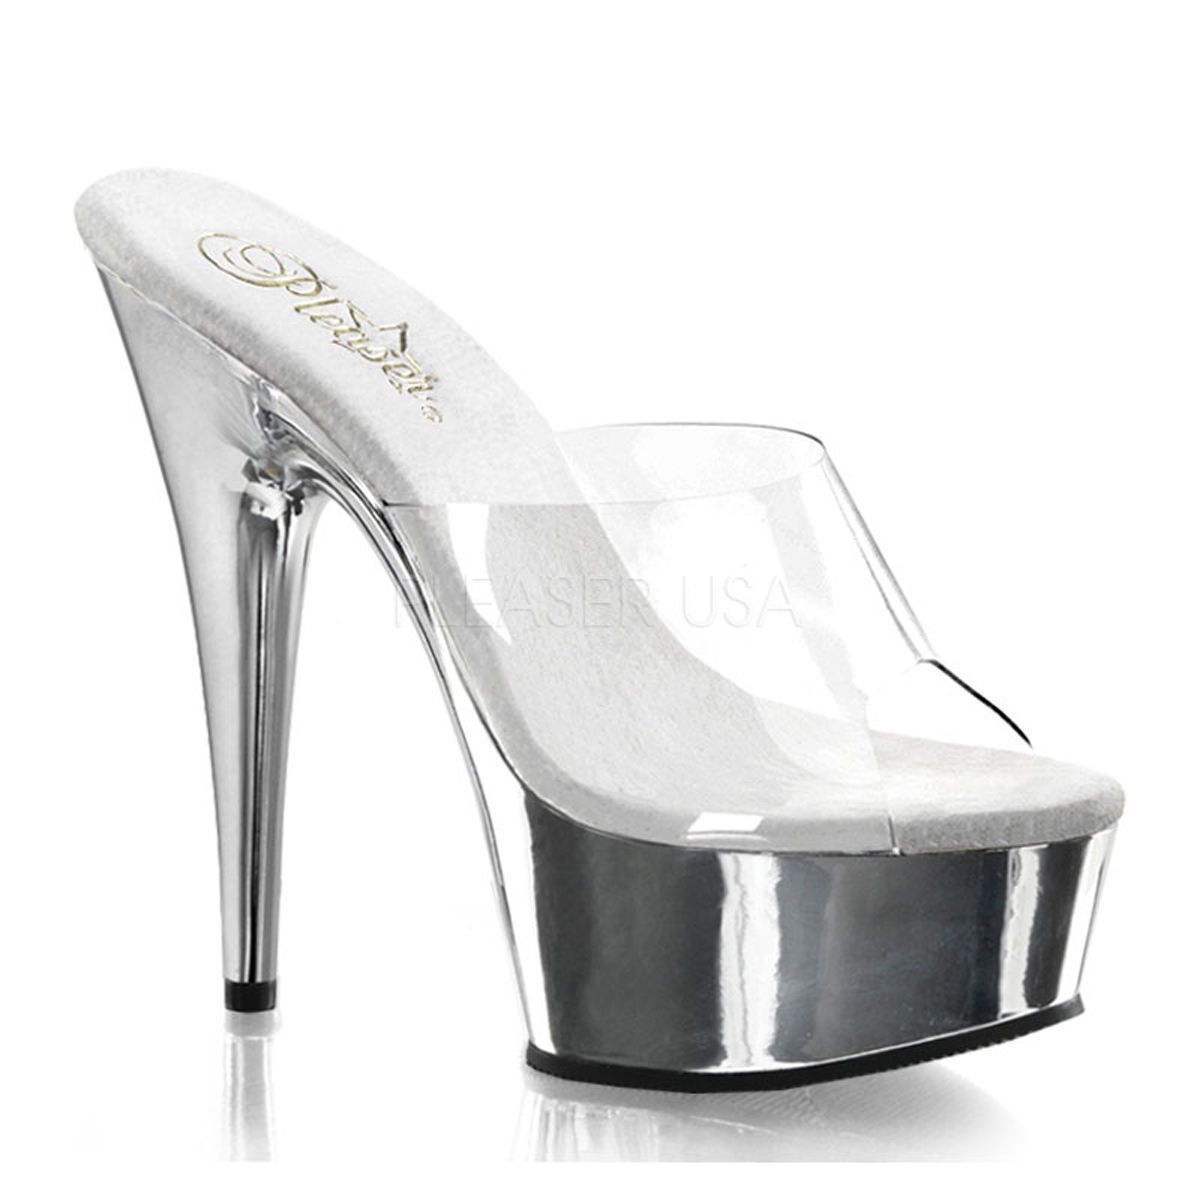 719e1693f30d7 Silver Clear Platform High Heels Drag Queen Crossdresser Stripper Shoes 12  13